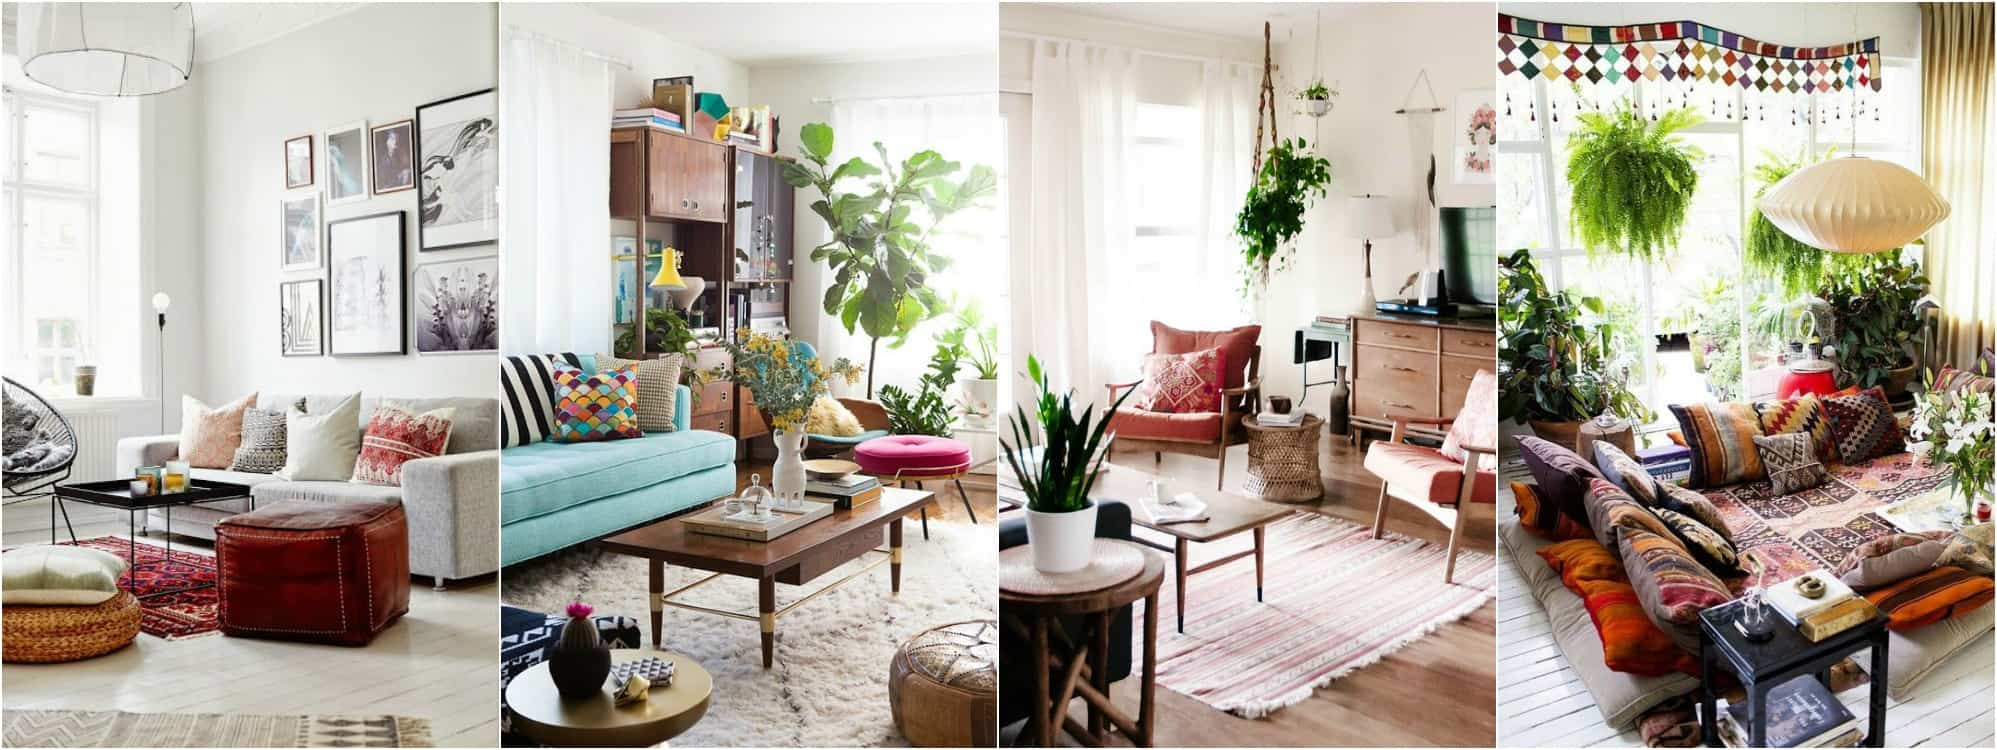 BOHO CHIC LIVING ROOM PLANS One Room ChallengeTM